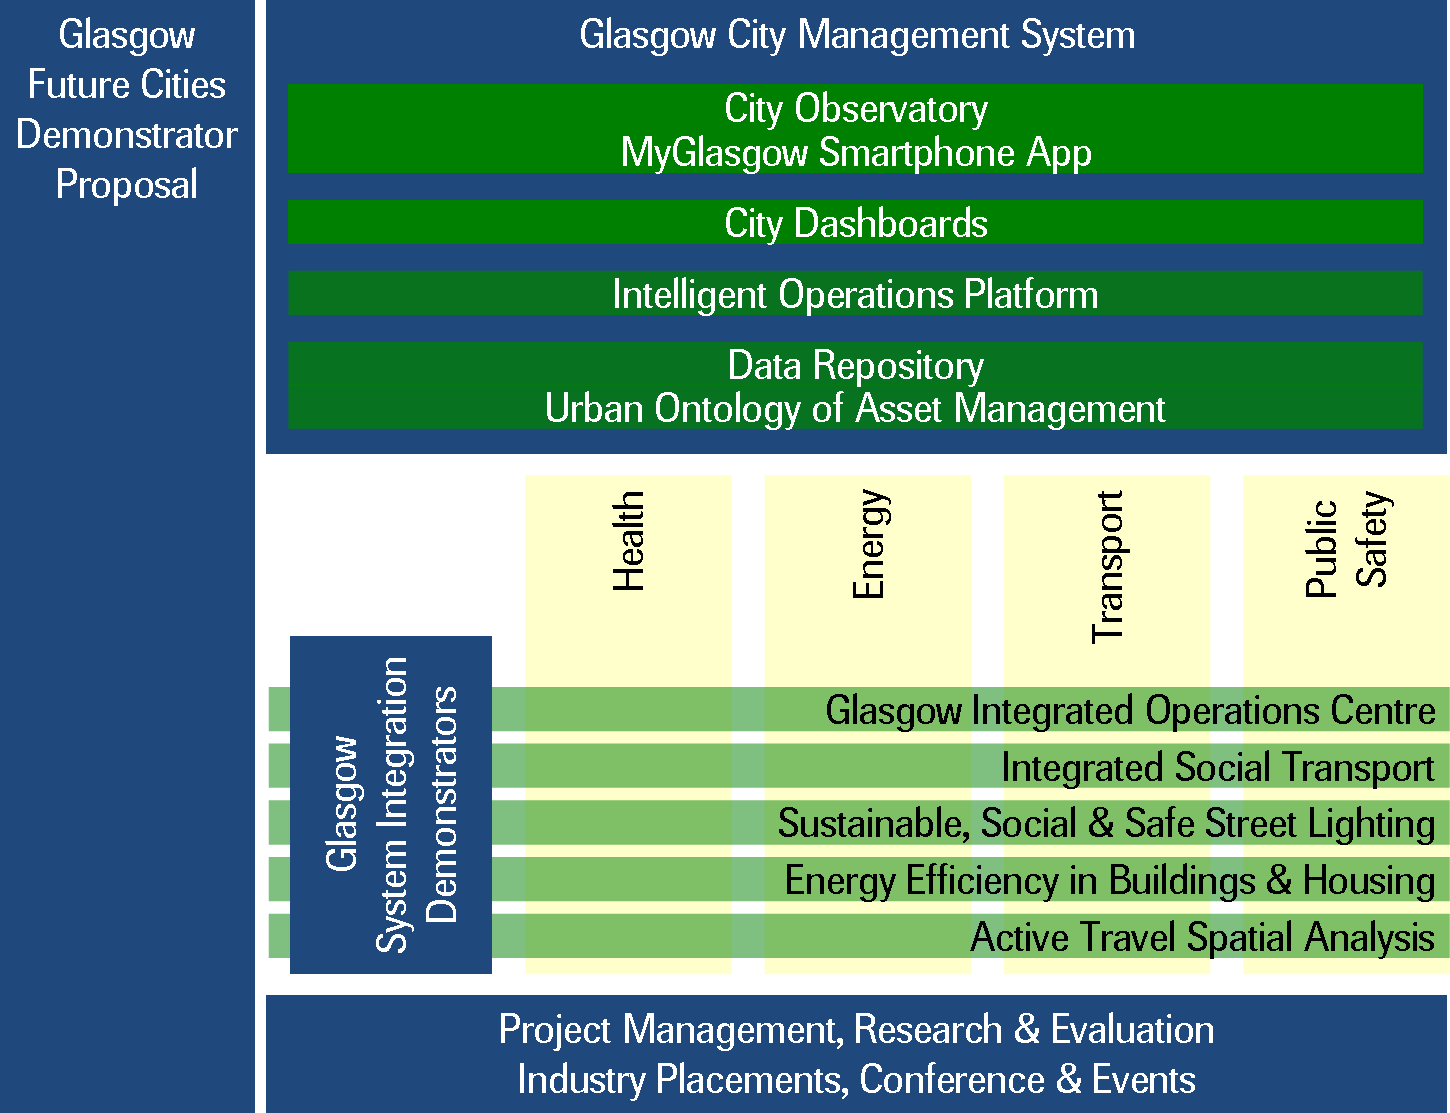 Technology infrastructure; The integration of city systems and data across multiple agencies; and The delivery of improved and responsive city services.